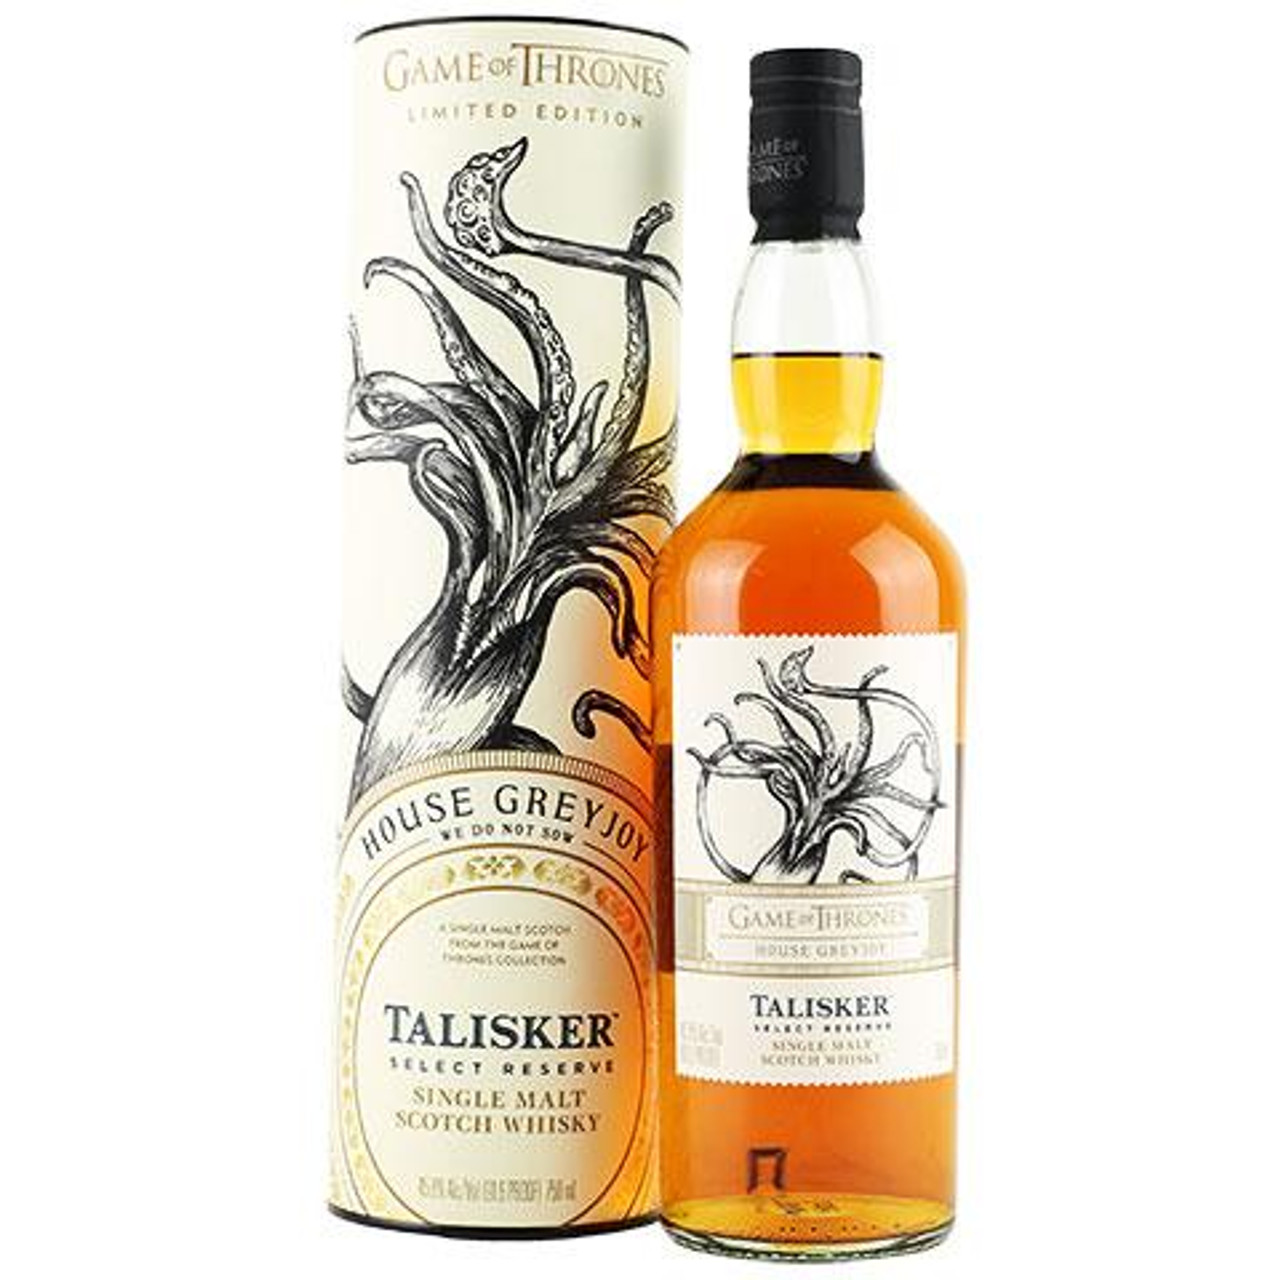 Talisker House Greyjoy is one of eight single malts Scotch whiskies made to commemorate the eighth and final season of Game of Thrones. This no-age statement single malt bears the sigil of House Greyjoy - a kraken. House Greyjoy rules the Iron Islands and worships the Drowned God. Talisker was a natural pair for House Greyjoy as this single malt is distilled on the shores of the Isle of Skye, one of the most remote and rugged areas of Scotland. The layered flavors and signature maritime character of Talisker Select Reserve are the result of its wave-battered shores. This liquid is an intense smoky single malt scotch with spicy, powerful and sweet elements combined with maritime flavors.